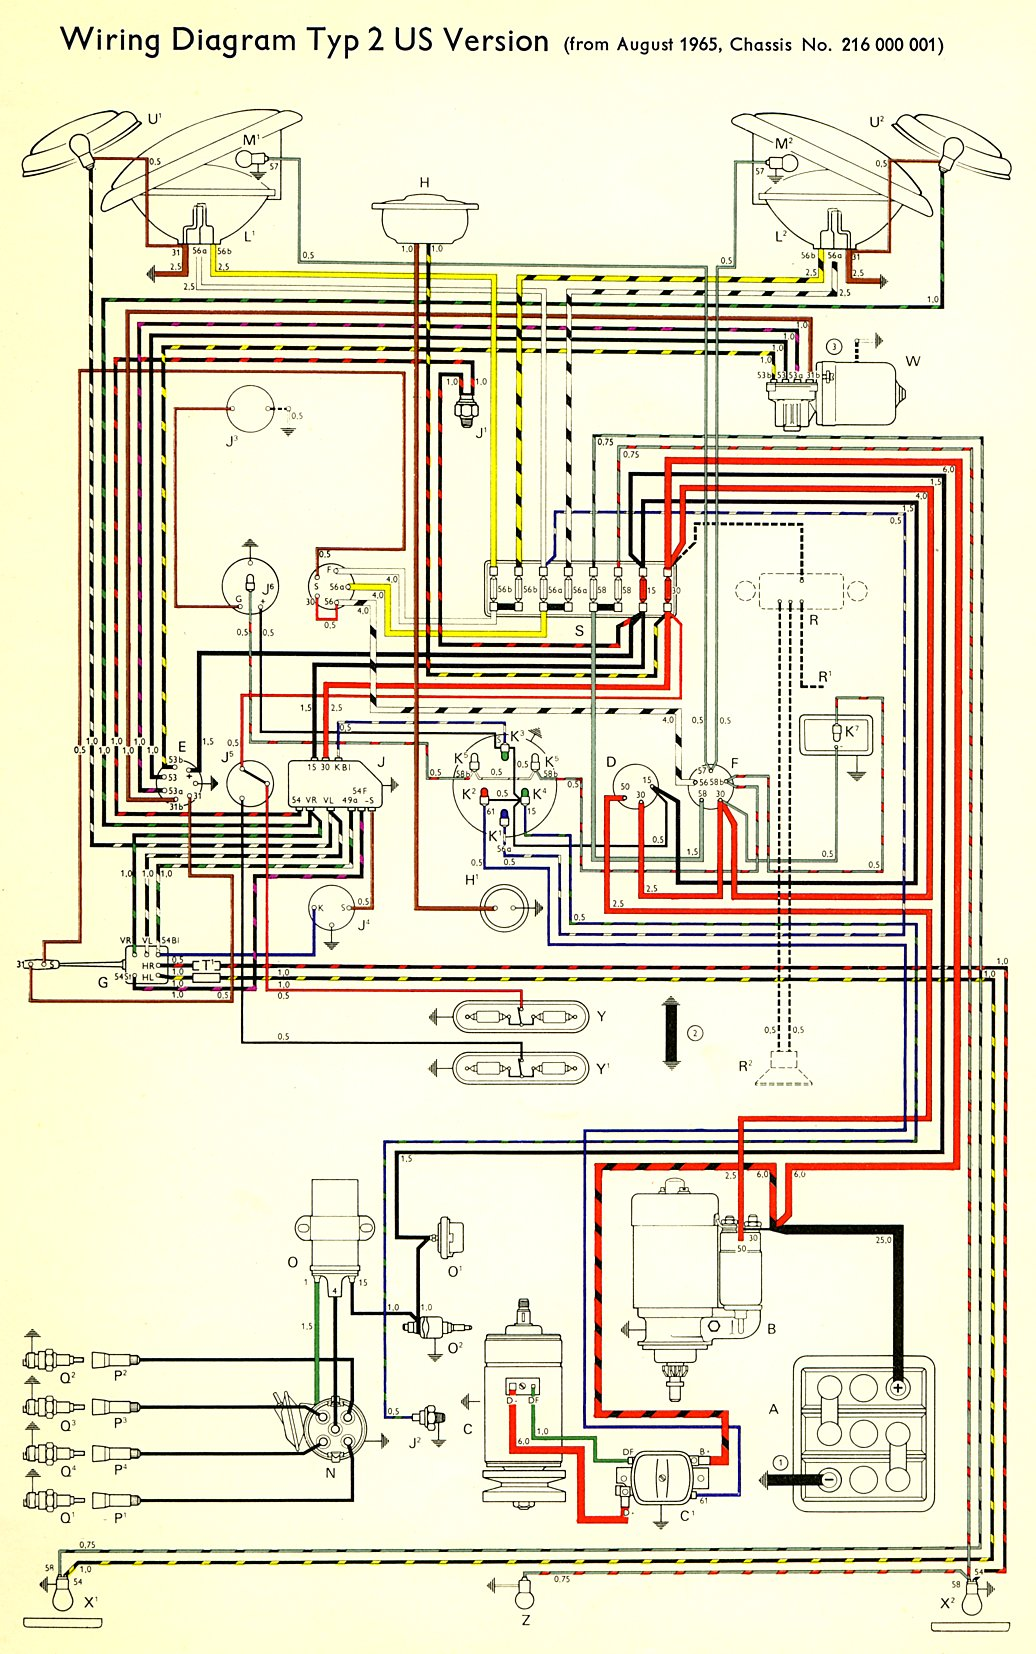 hight resolution of 1966 bus wiring diagram usa thegoldenbug com rh thegoldenbug com vw bus engine diagram 1969 vw